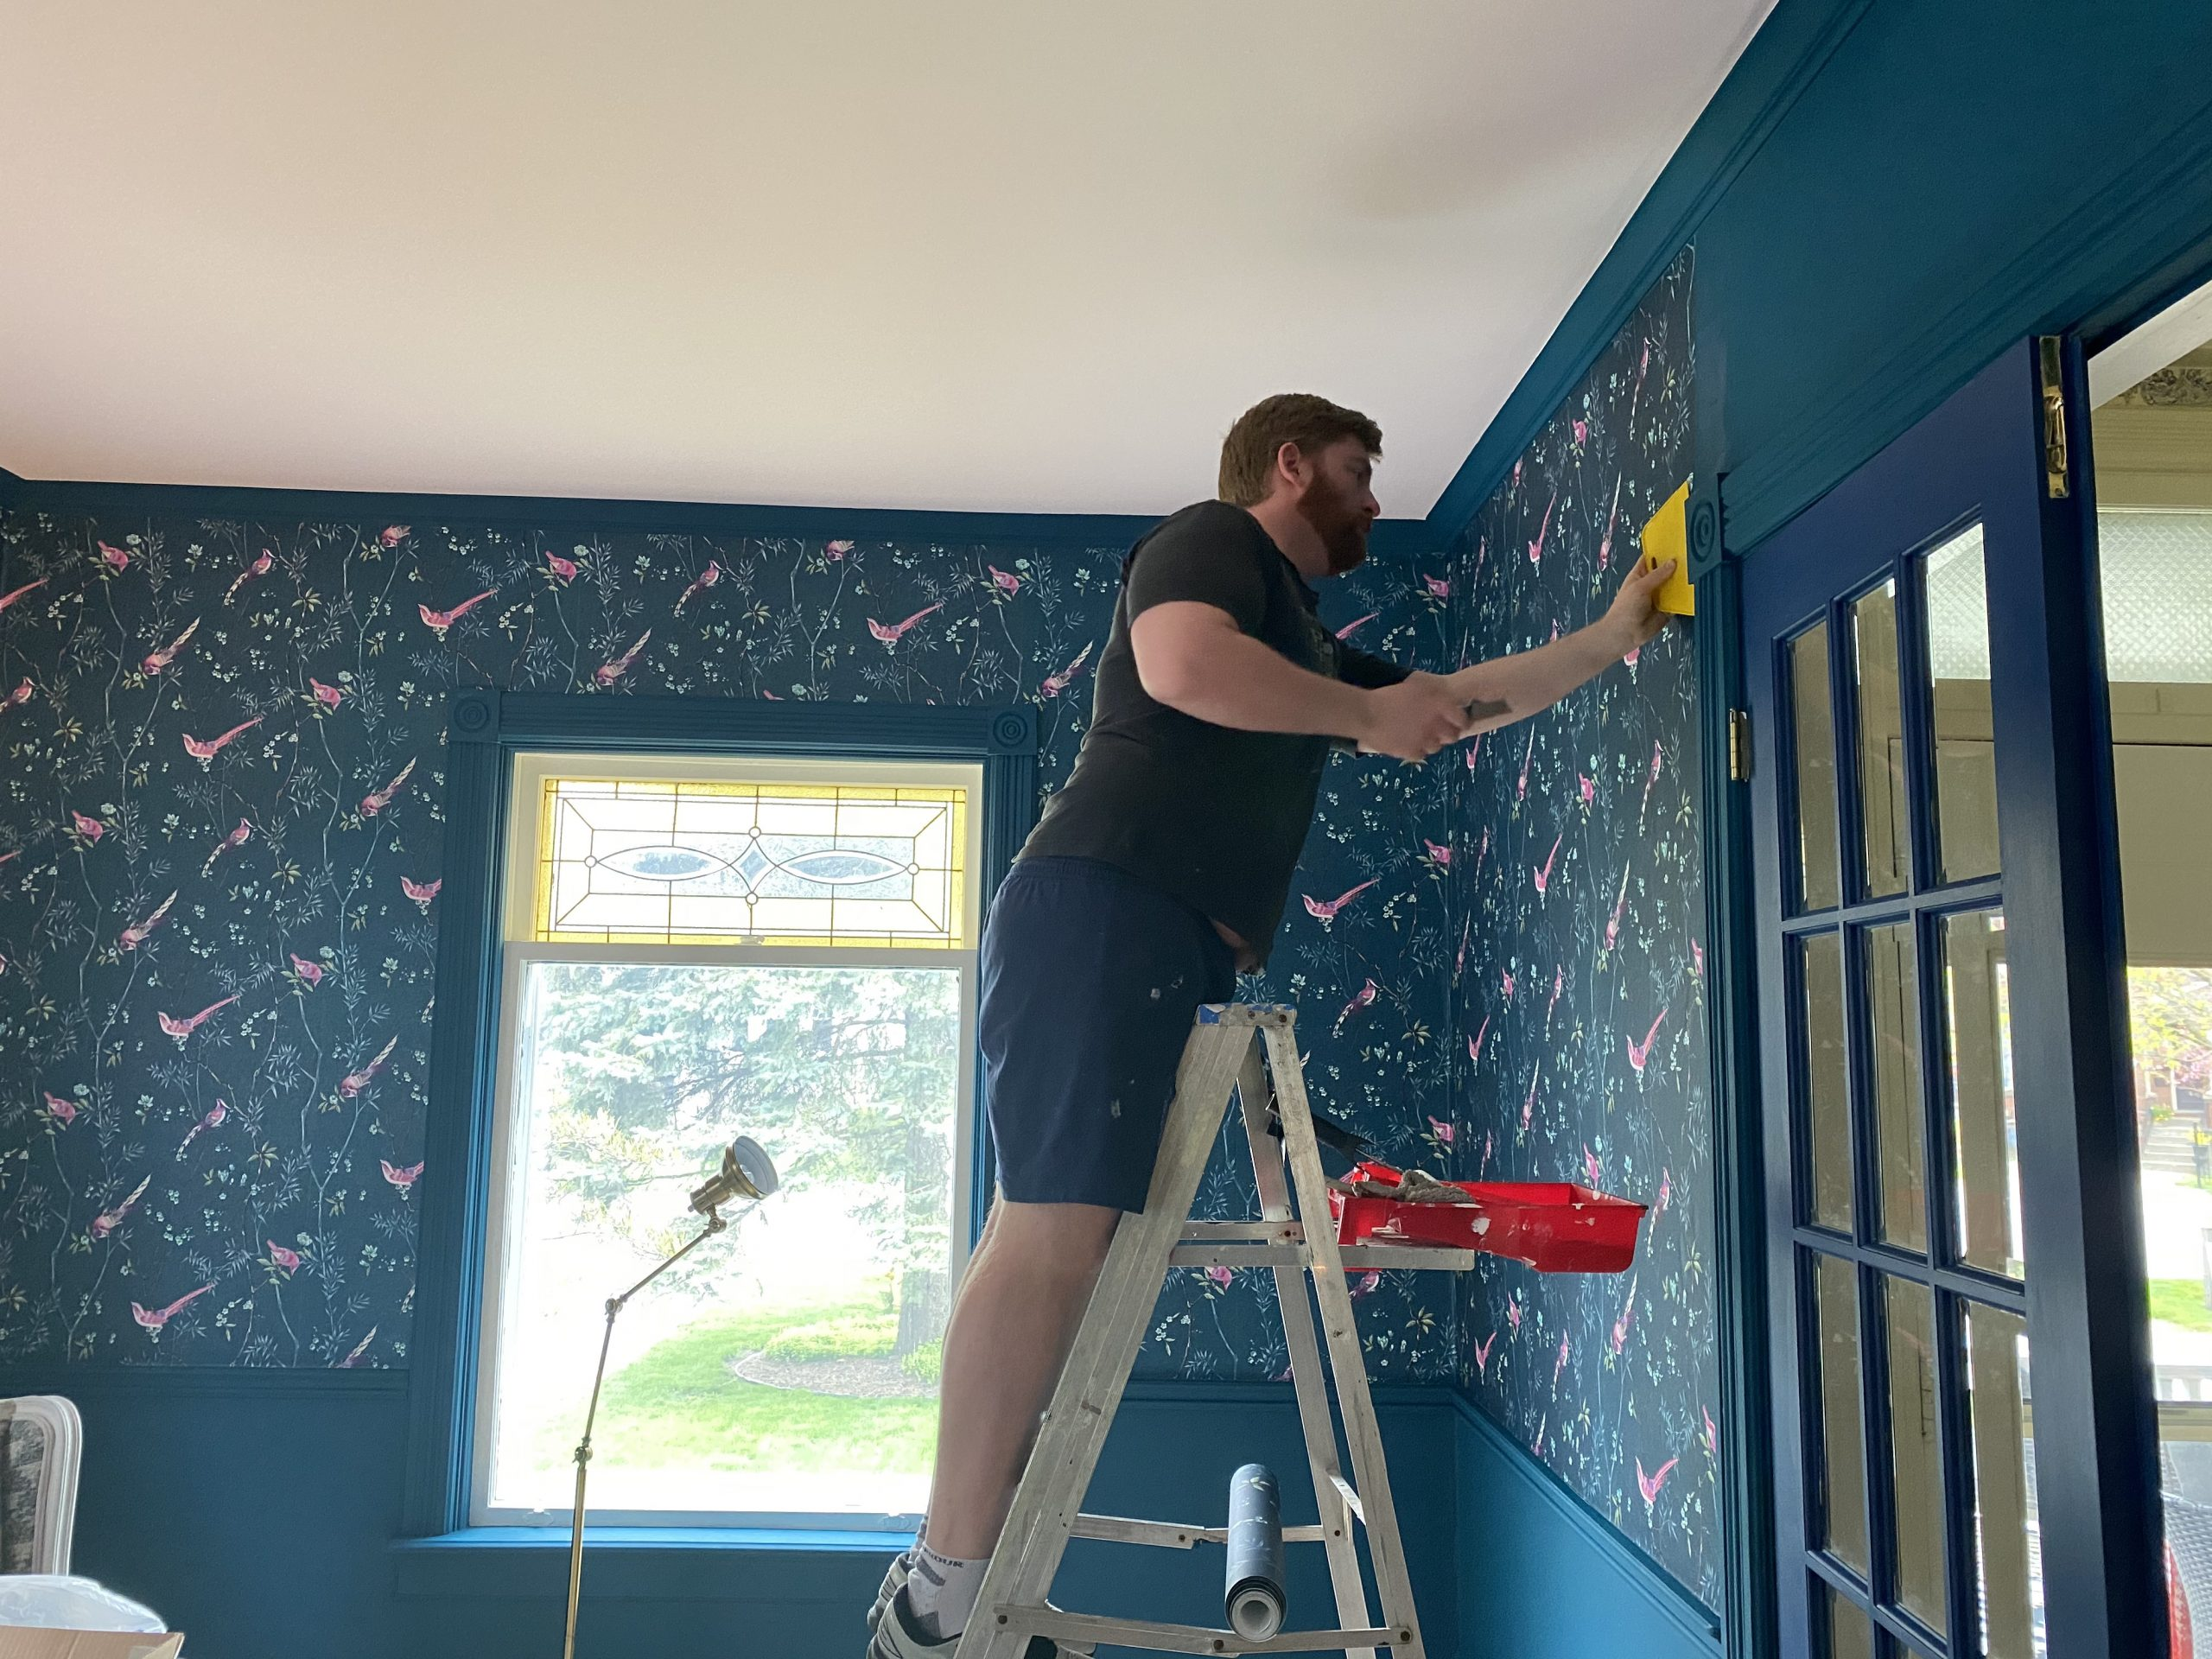 Kyle is smoothing out the wallpaper chosen by interior decorator Heather in their Windsor home